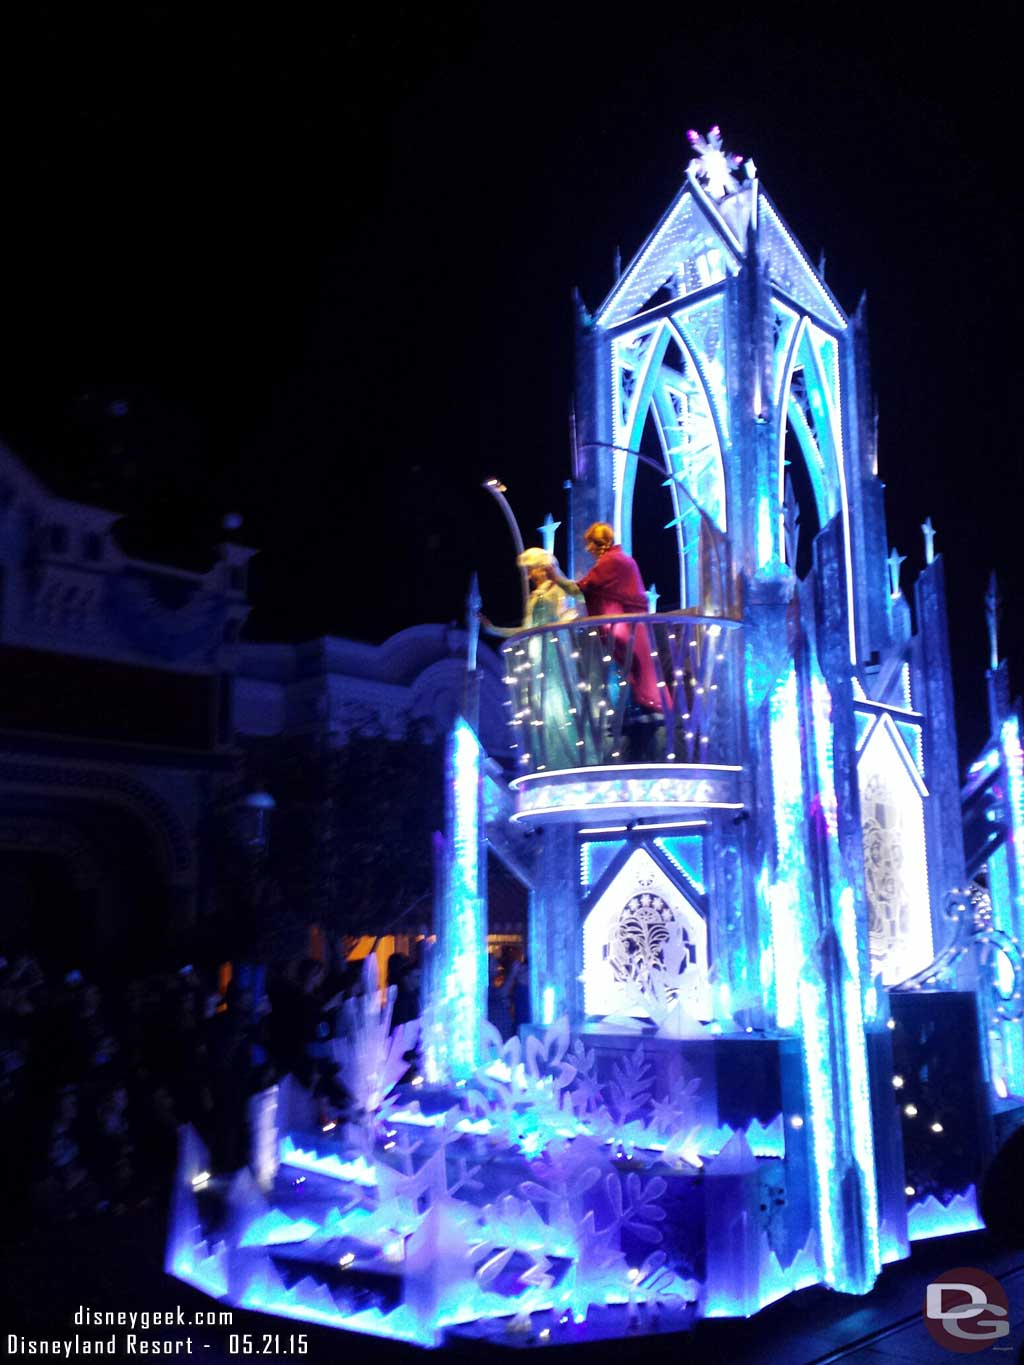 #Frozen Paint the Night premiere #Disneyland60